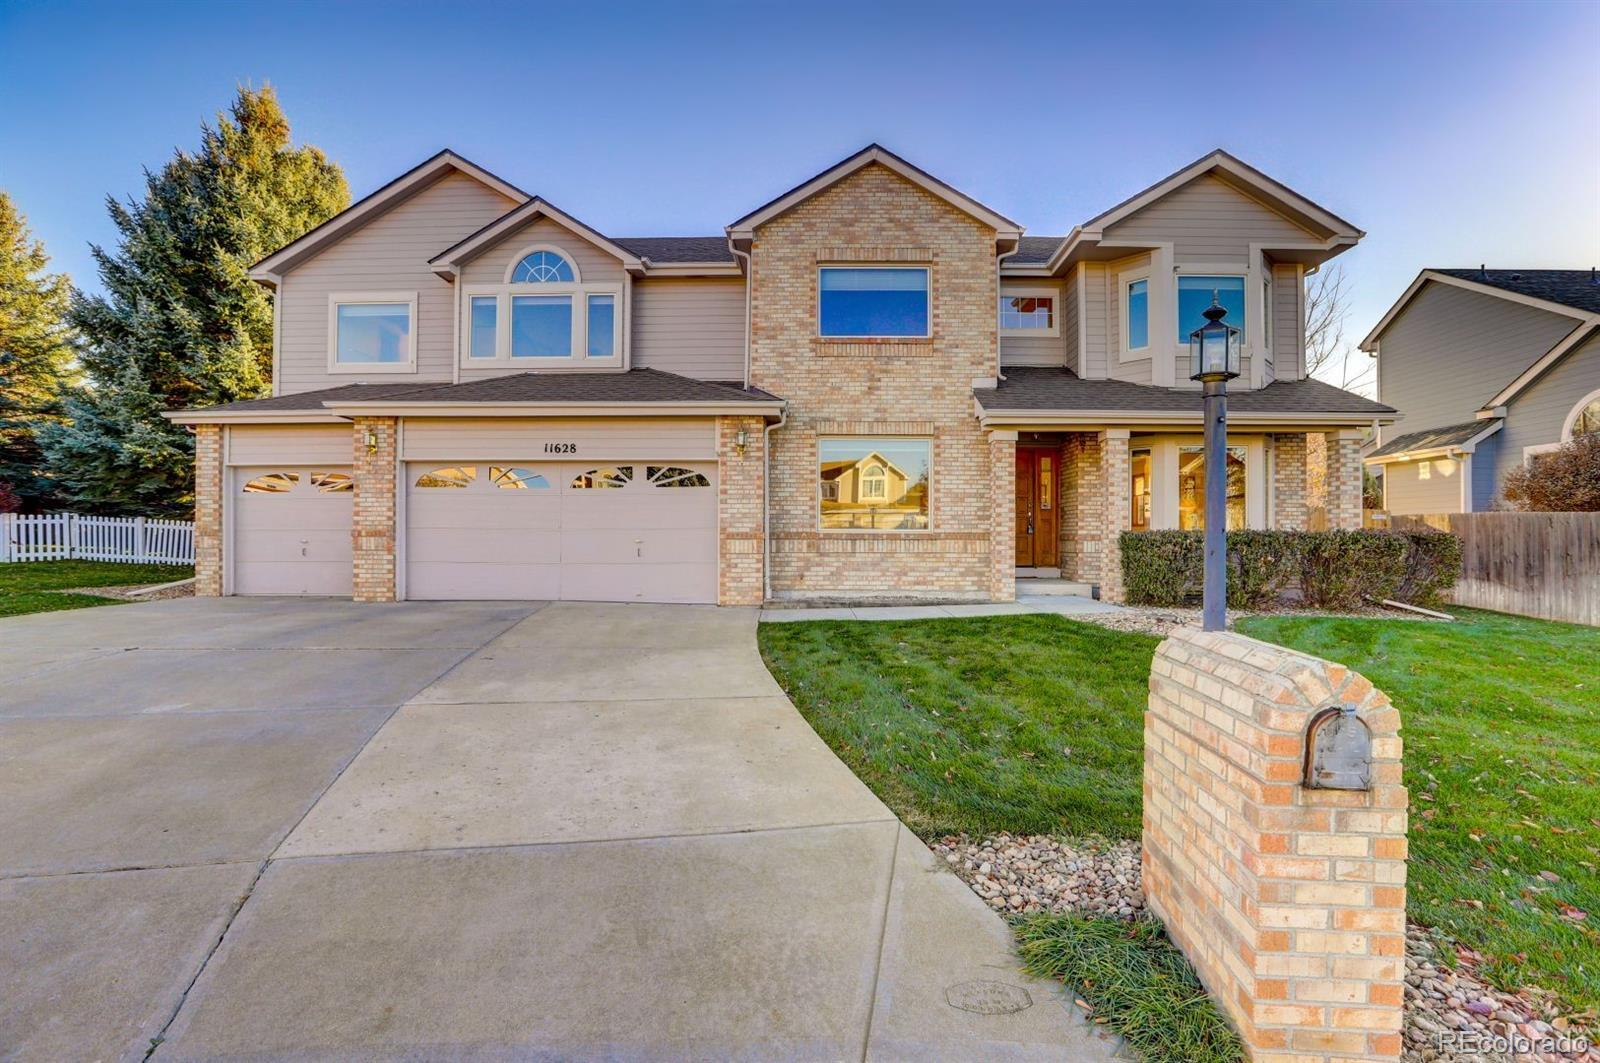 11628 W 74th Place, Arvada, CO 80005 - #: 6210716